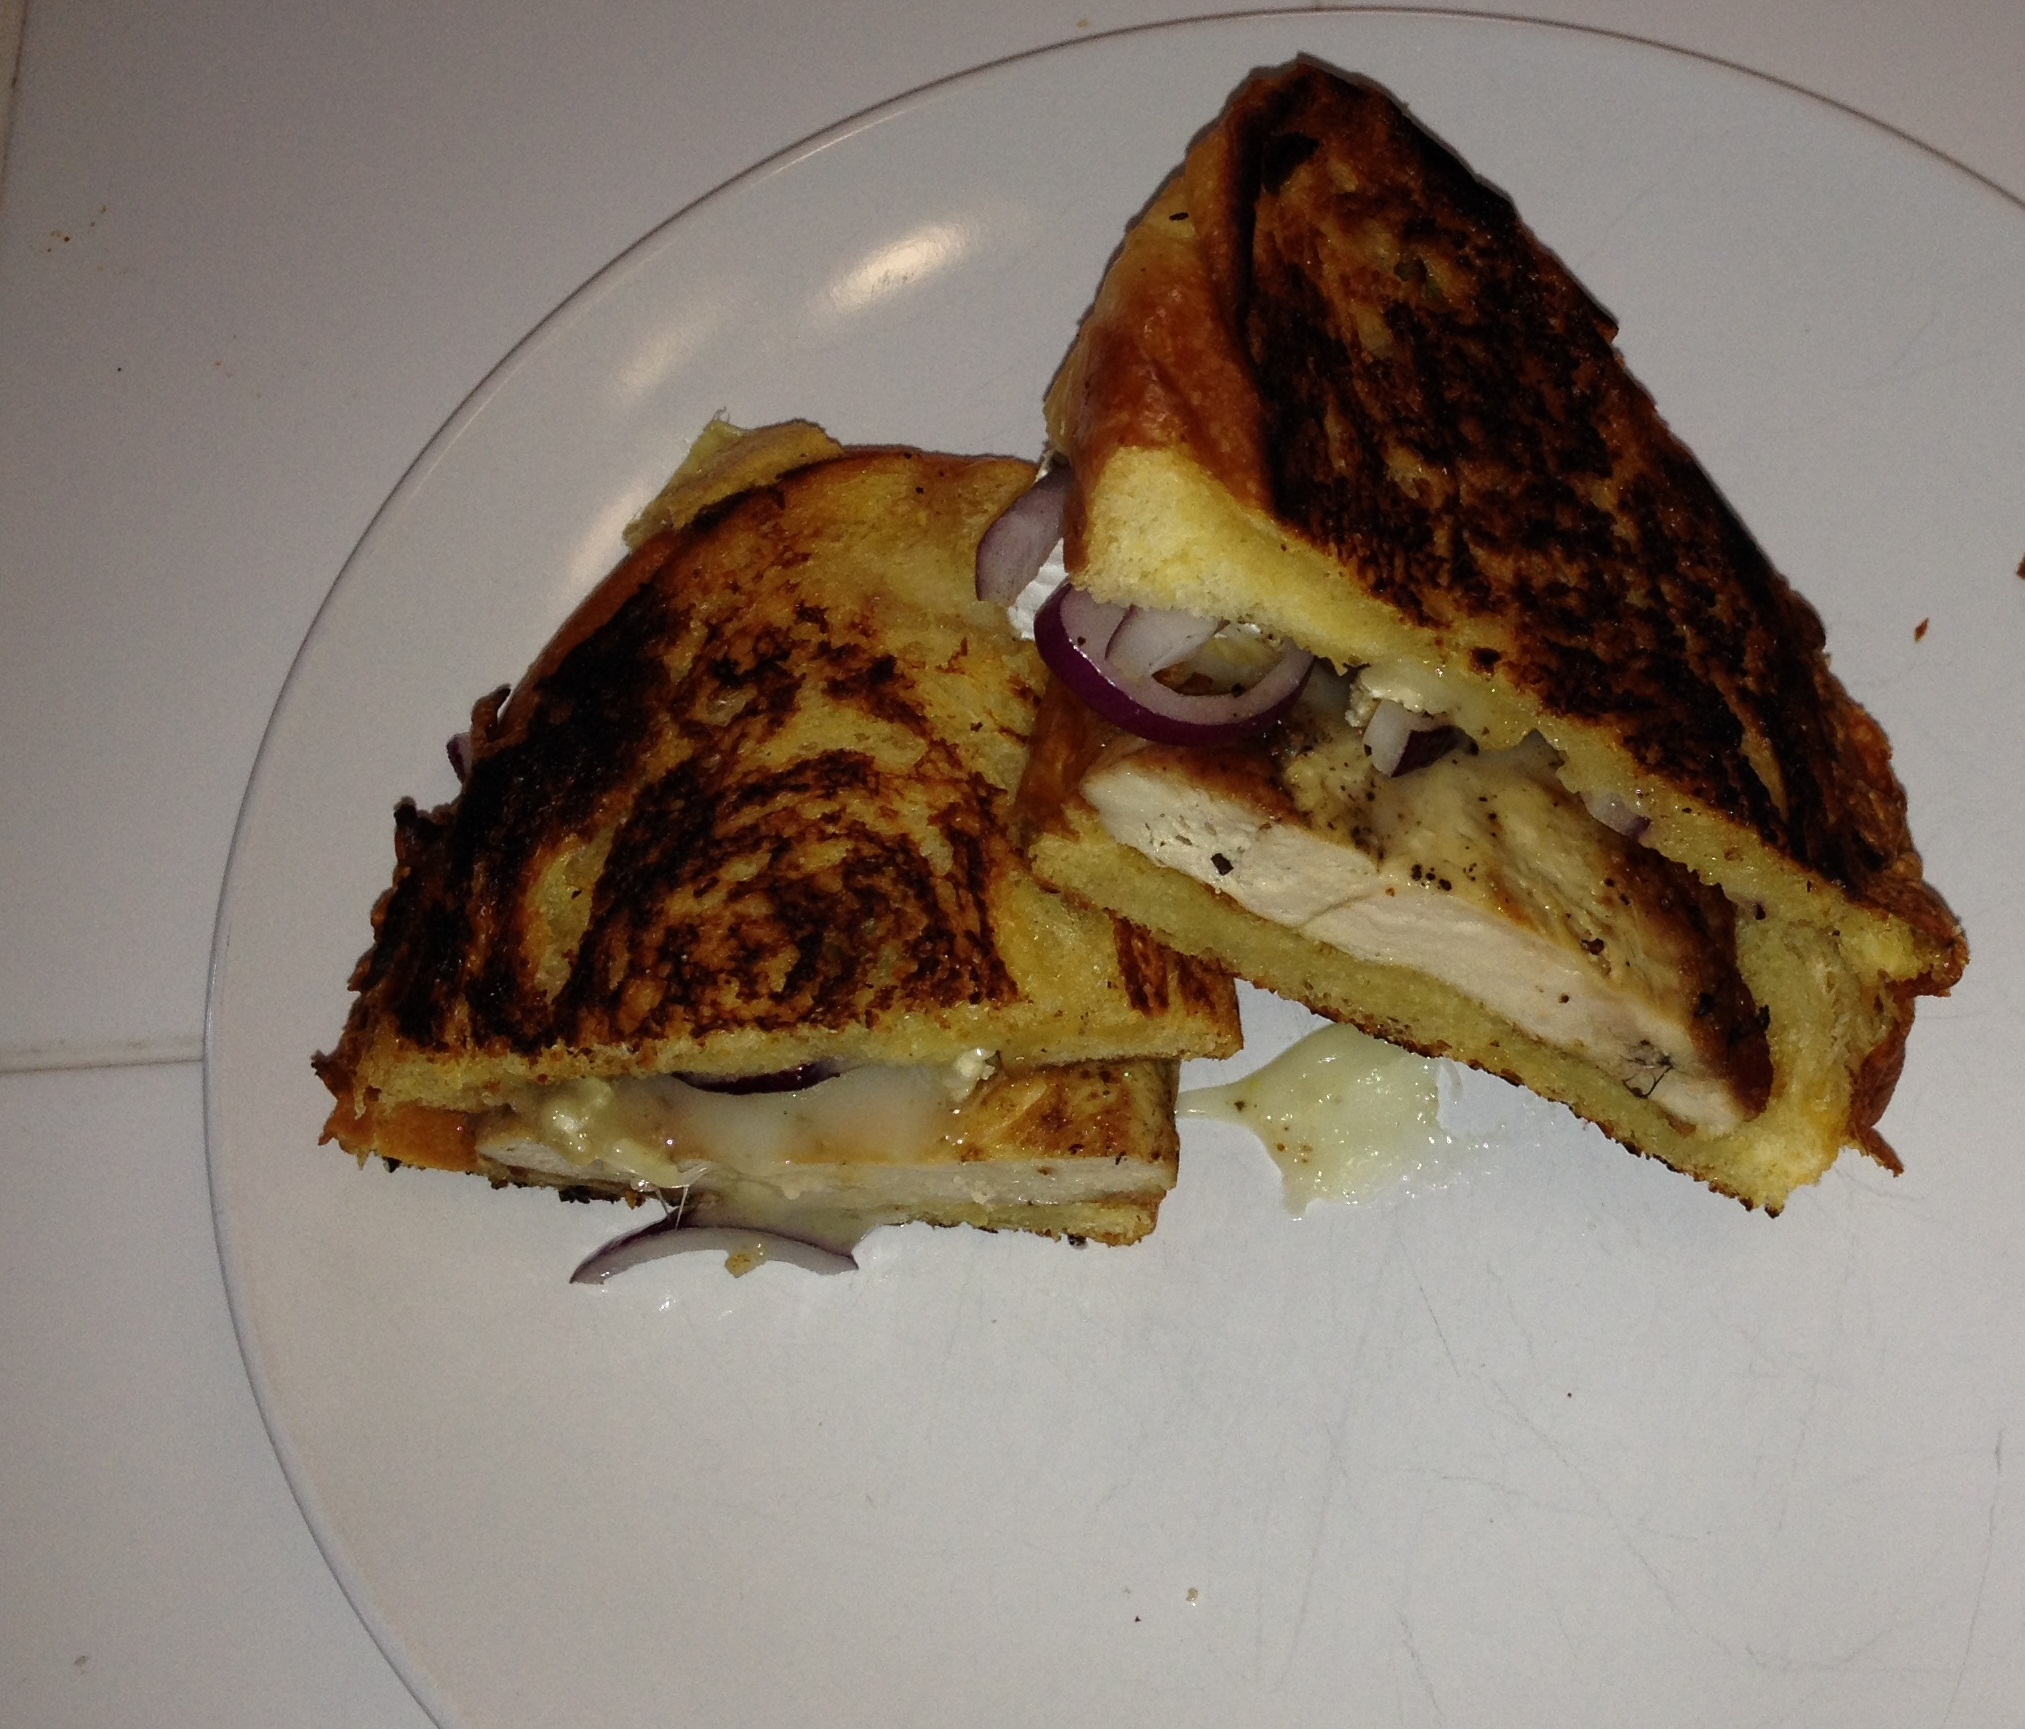 Pheasant grilled cheese